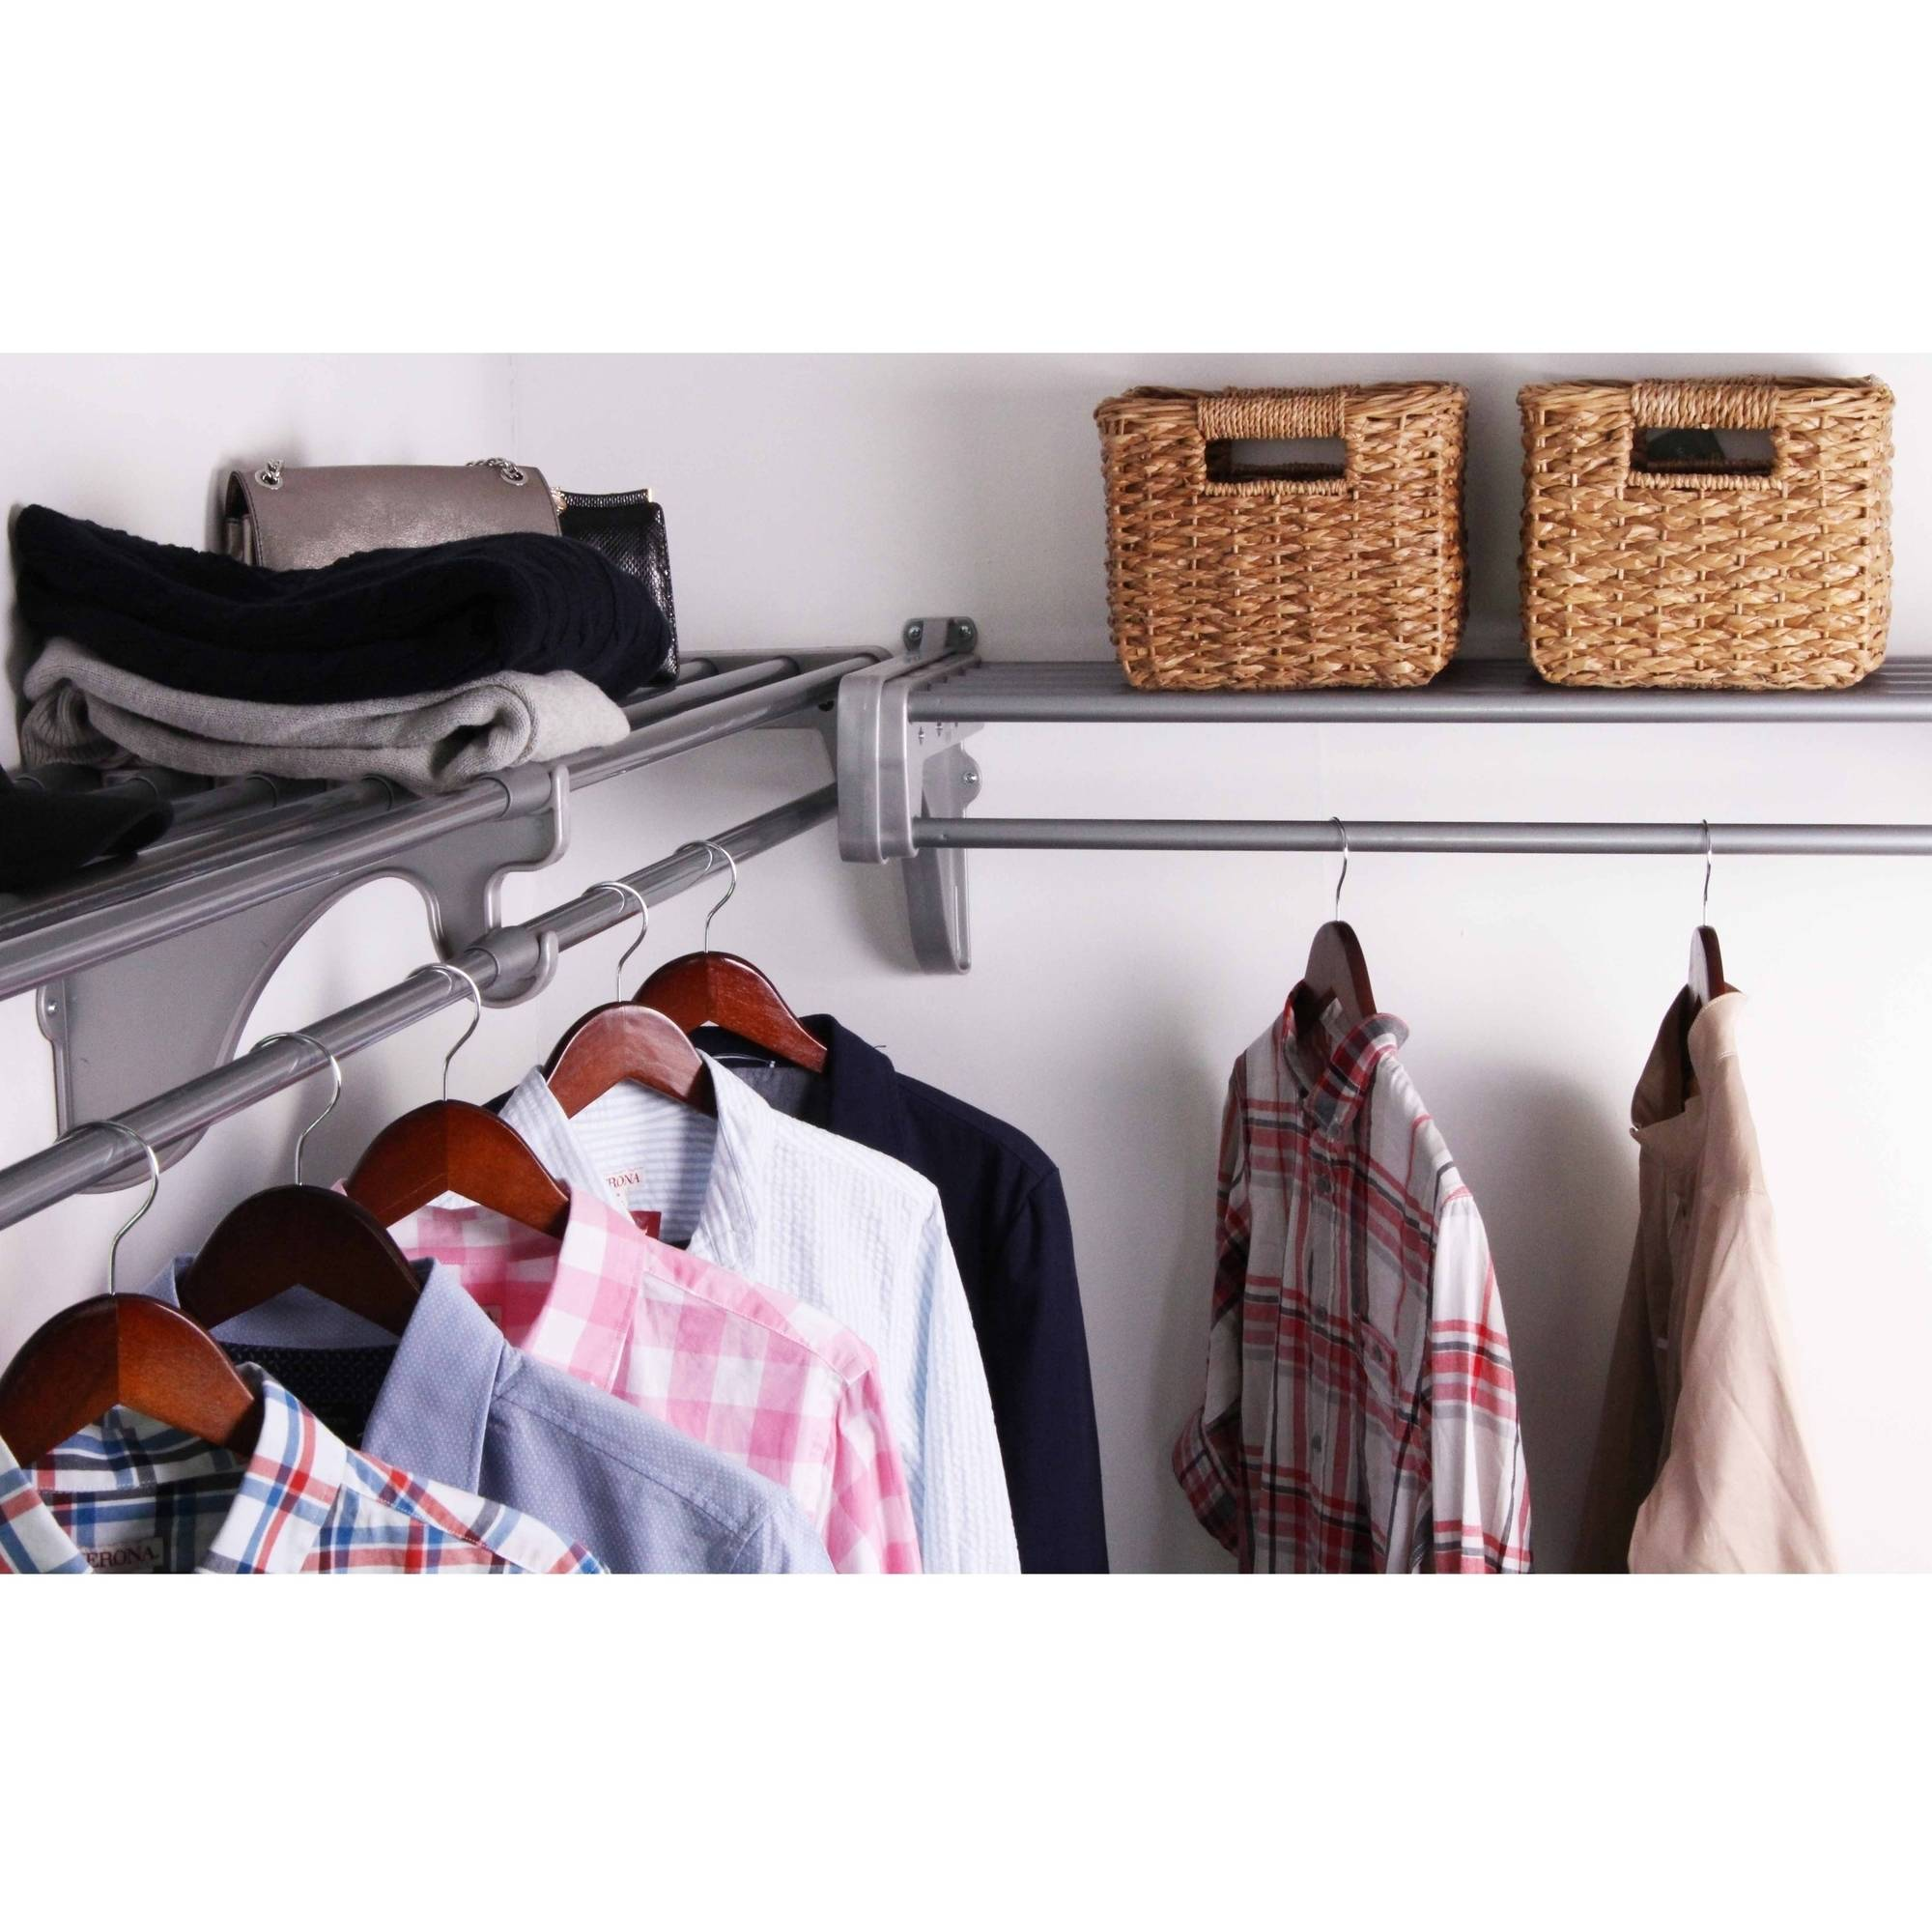 EZ Shelf 12' Closet Organizer Kit, Up to 12.2' of Hanging and Shelf Space, Silver